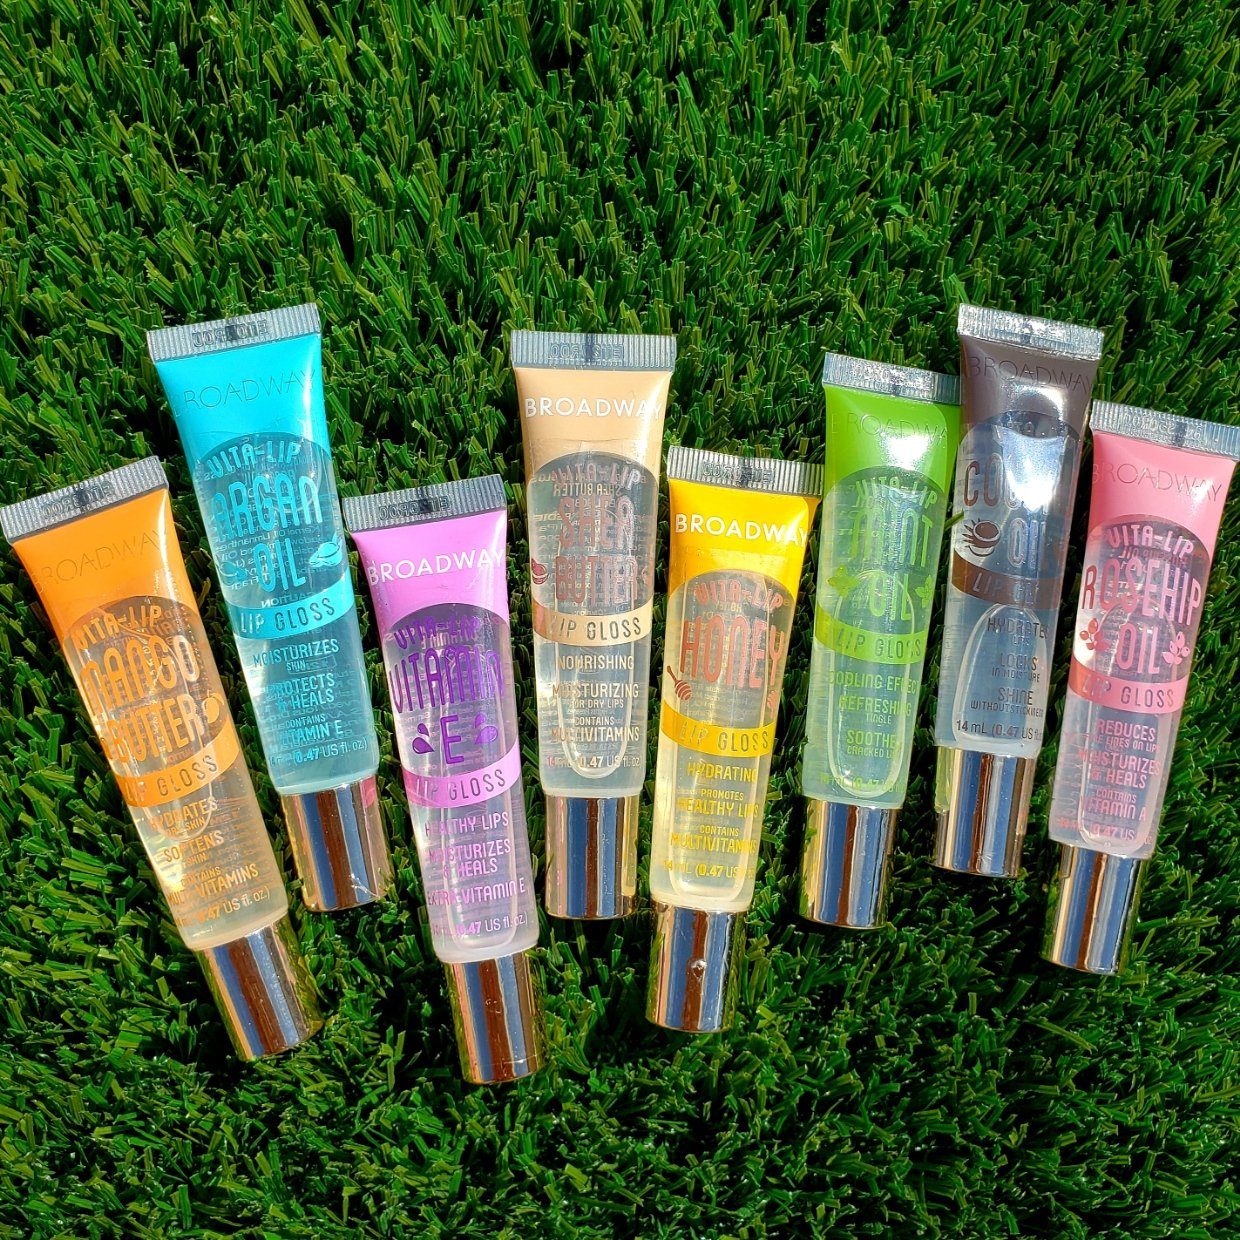 Broadway Lipgloss Multipack 1 of Each Flavor (8PC)